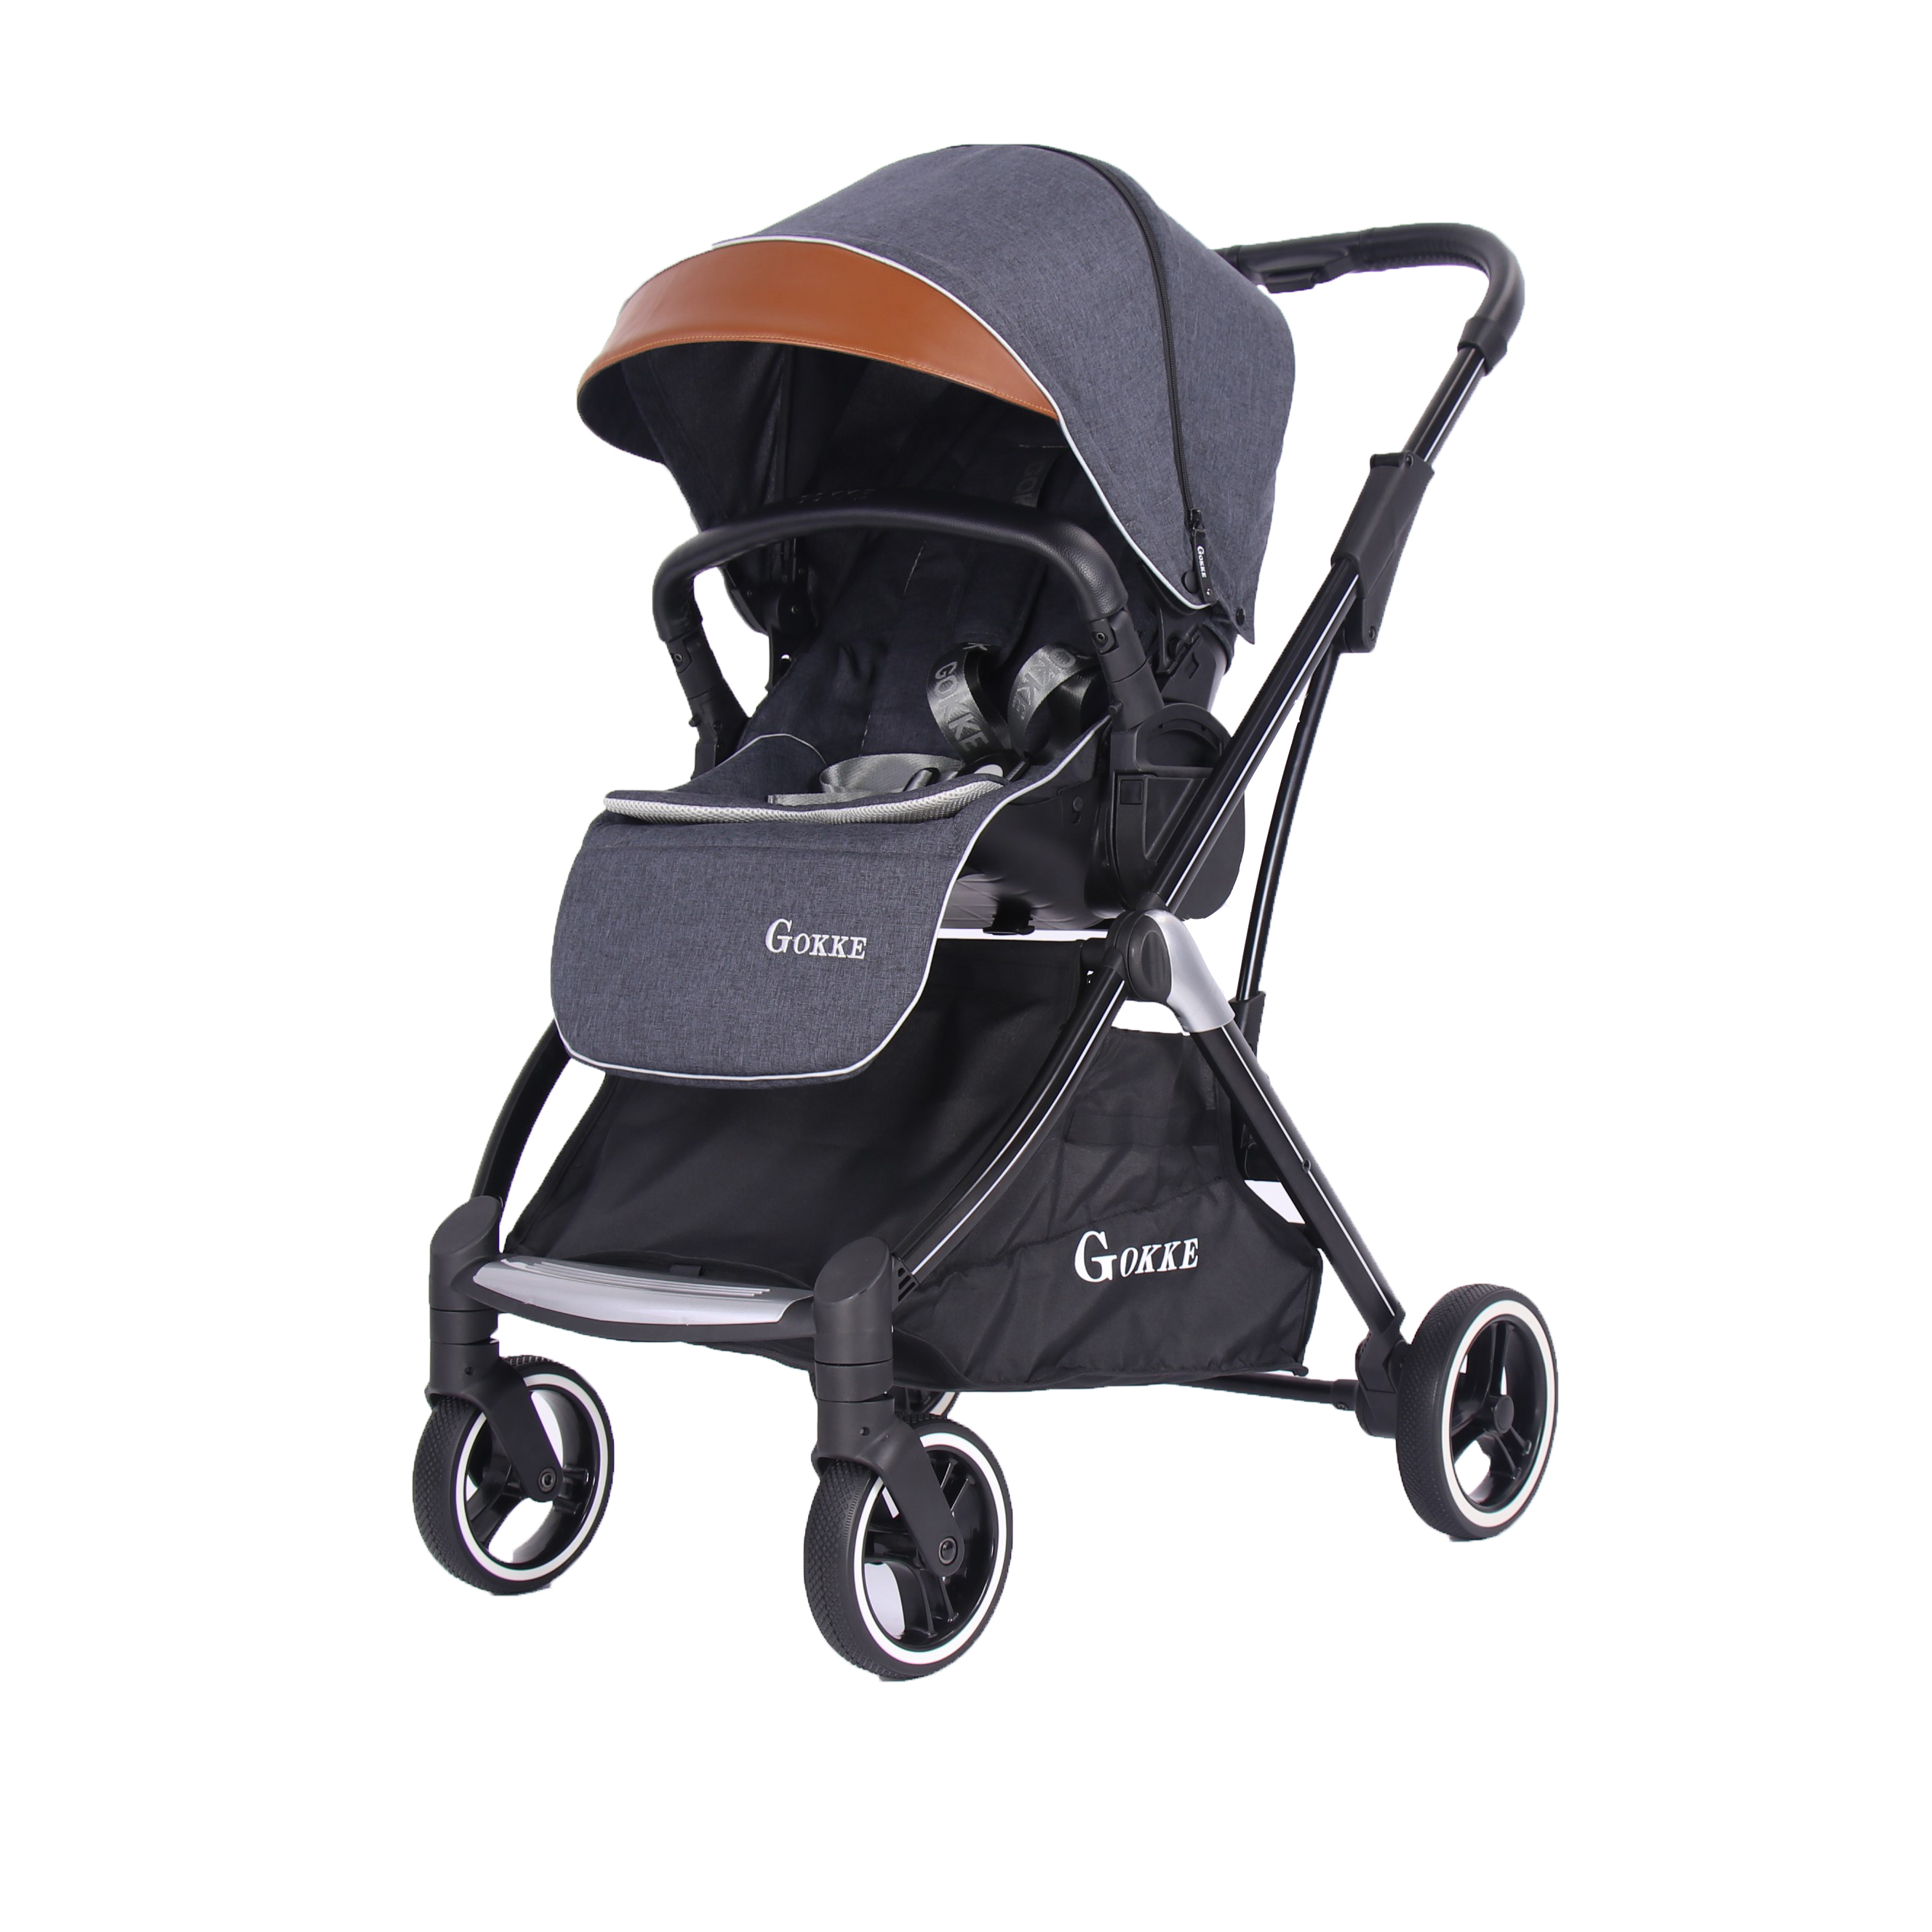 Luxury 3 In 1 Foldable Infant Travel Baby Stroller With Carseat Buy High Quality Baby Kids Toddler Stroller Aluminum Baby High Chair Travel System Baby Stroller Product On Alibaba Com